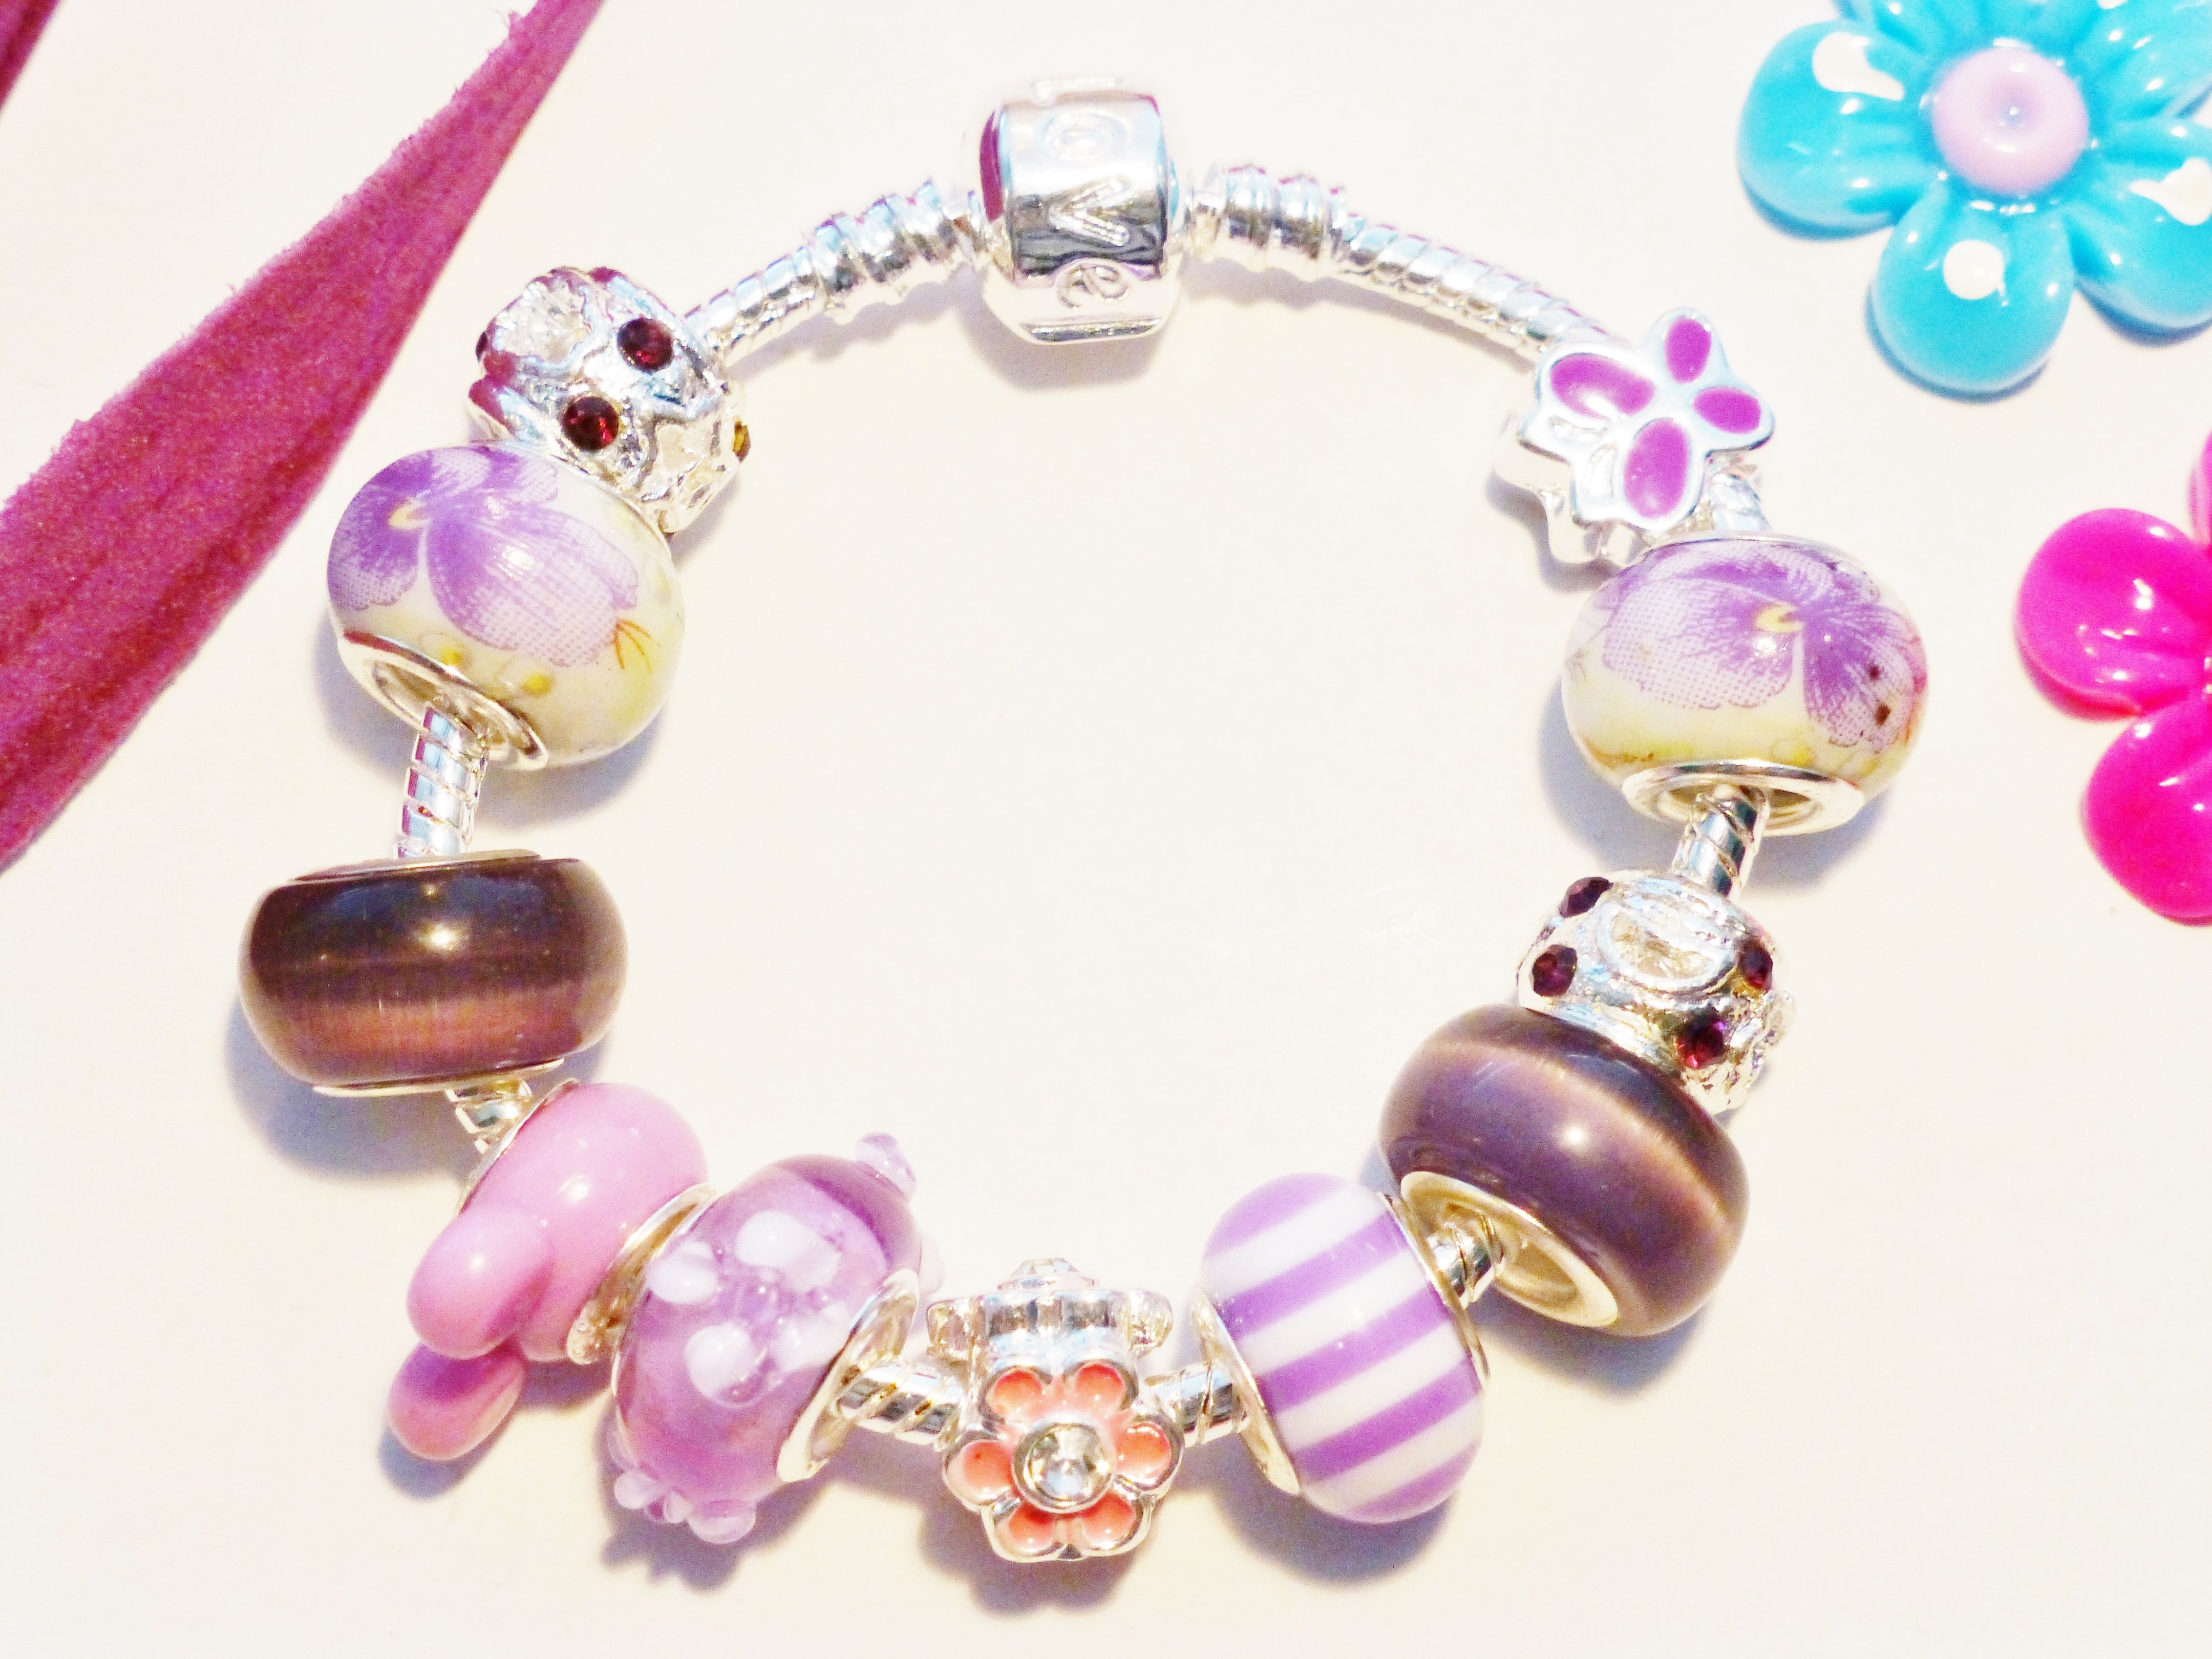 Purpal Childs Charm Bracelet Complete With Charms To View All Designs Or Purchase Enter